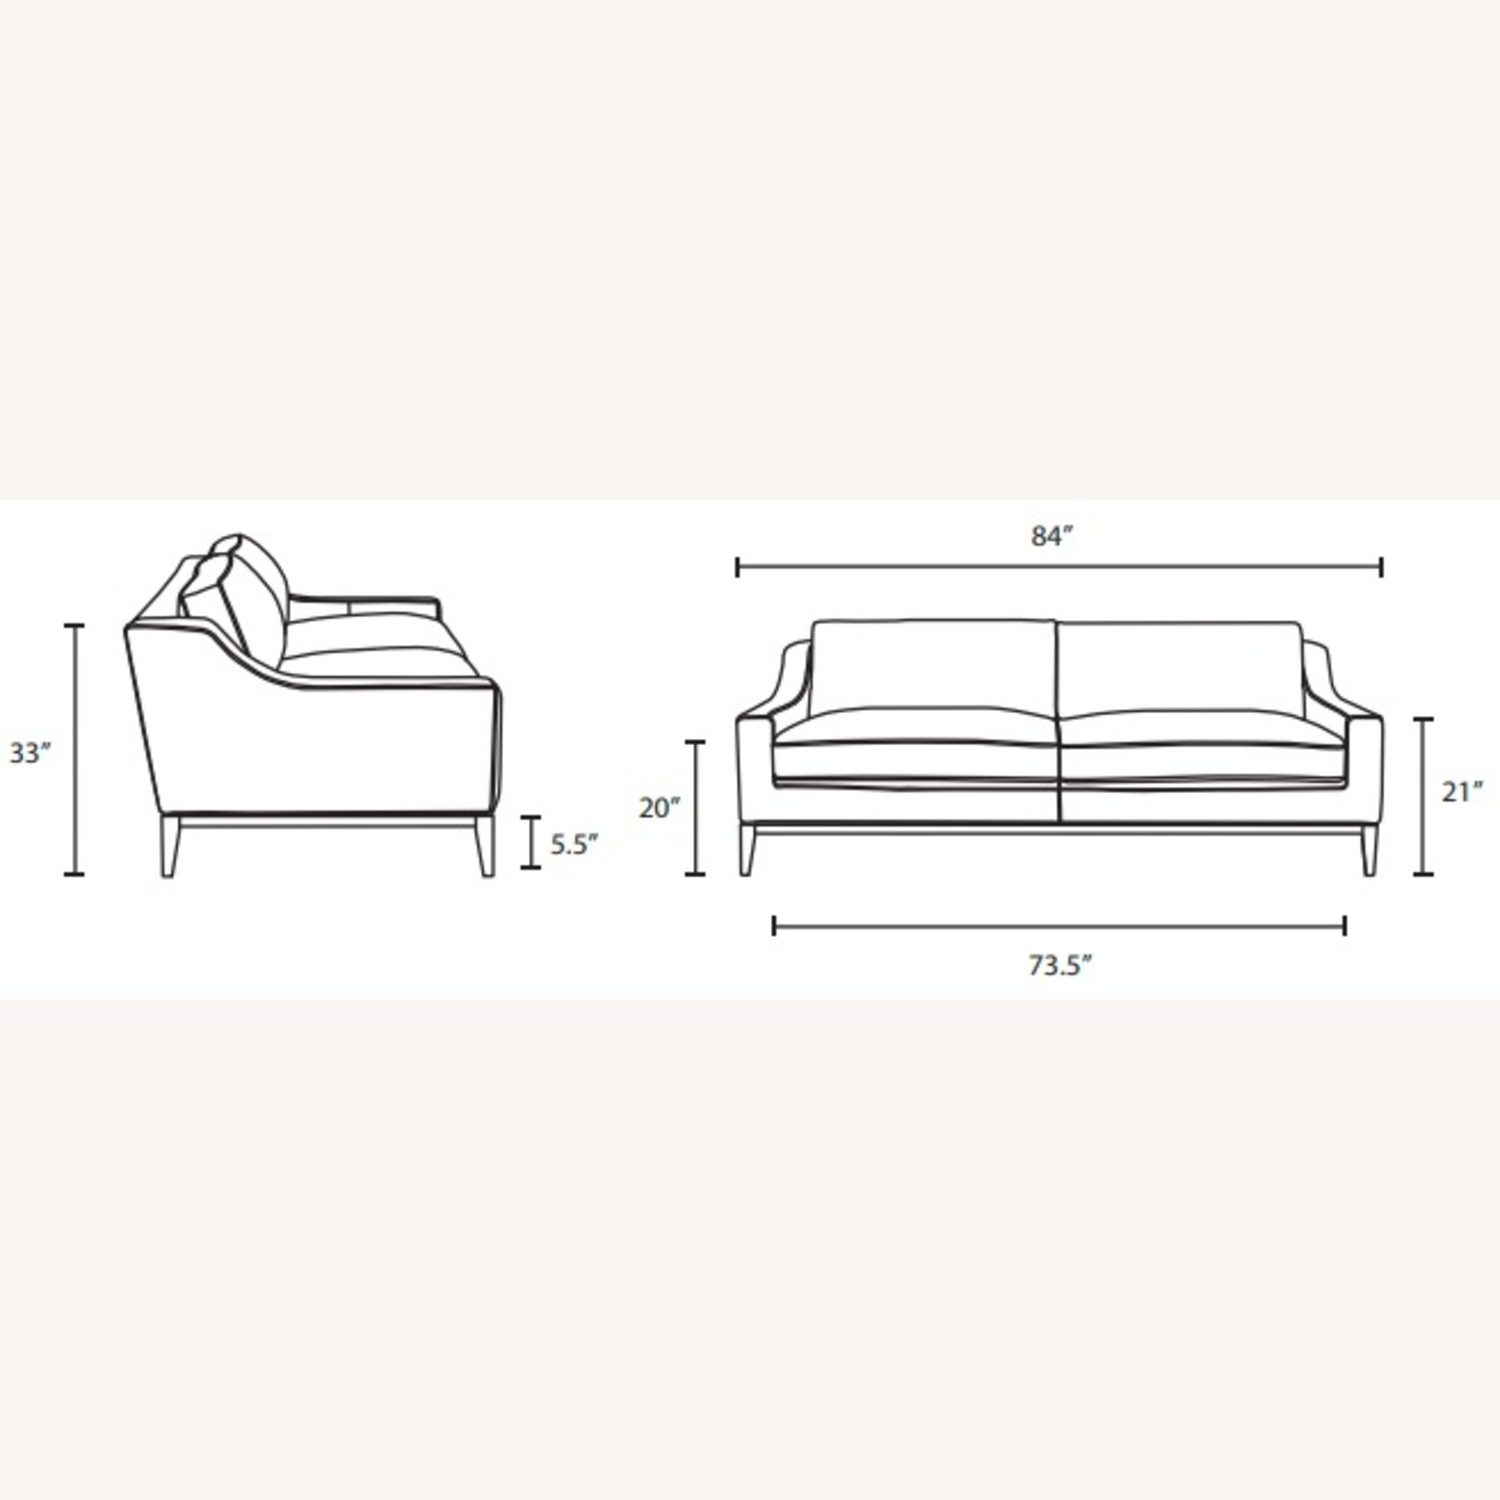 Sofa In Gray Leather Upholstery W/ Steel Base - image-8